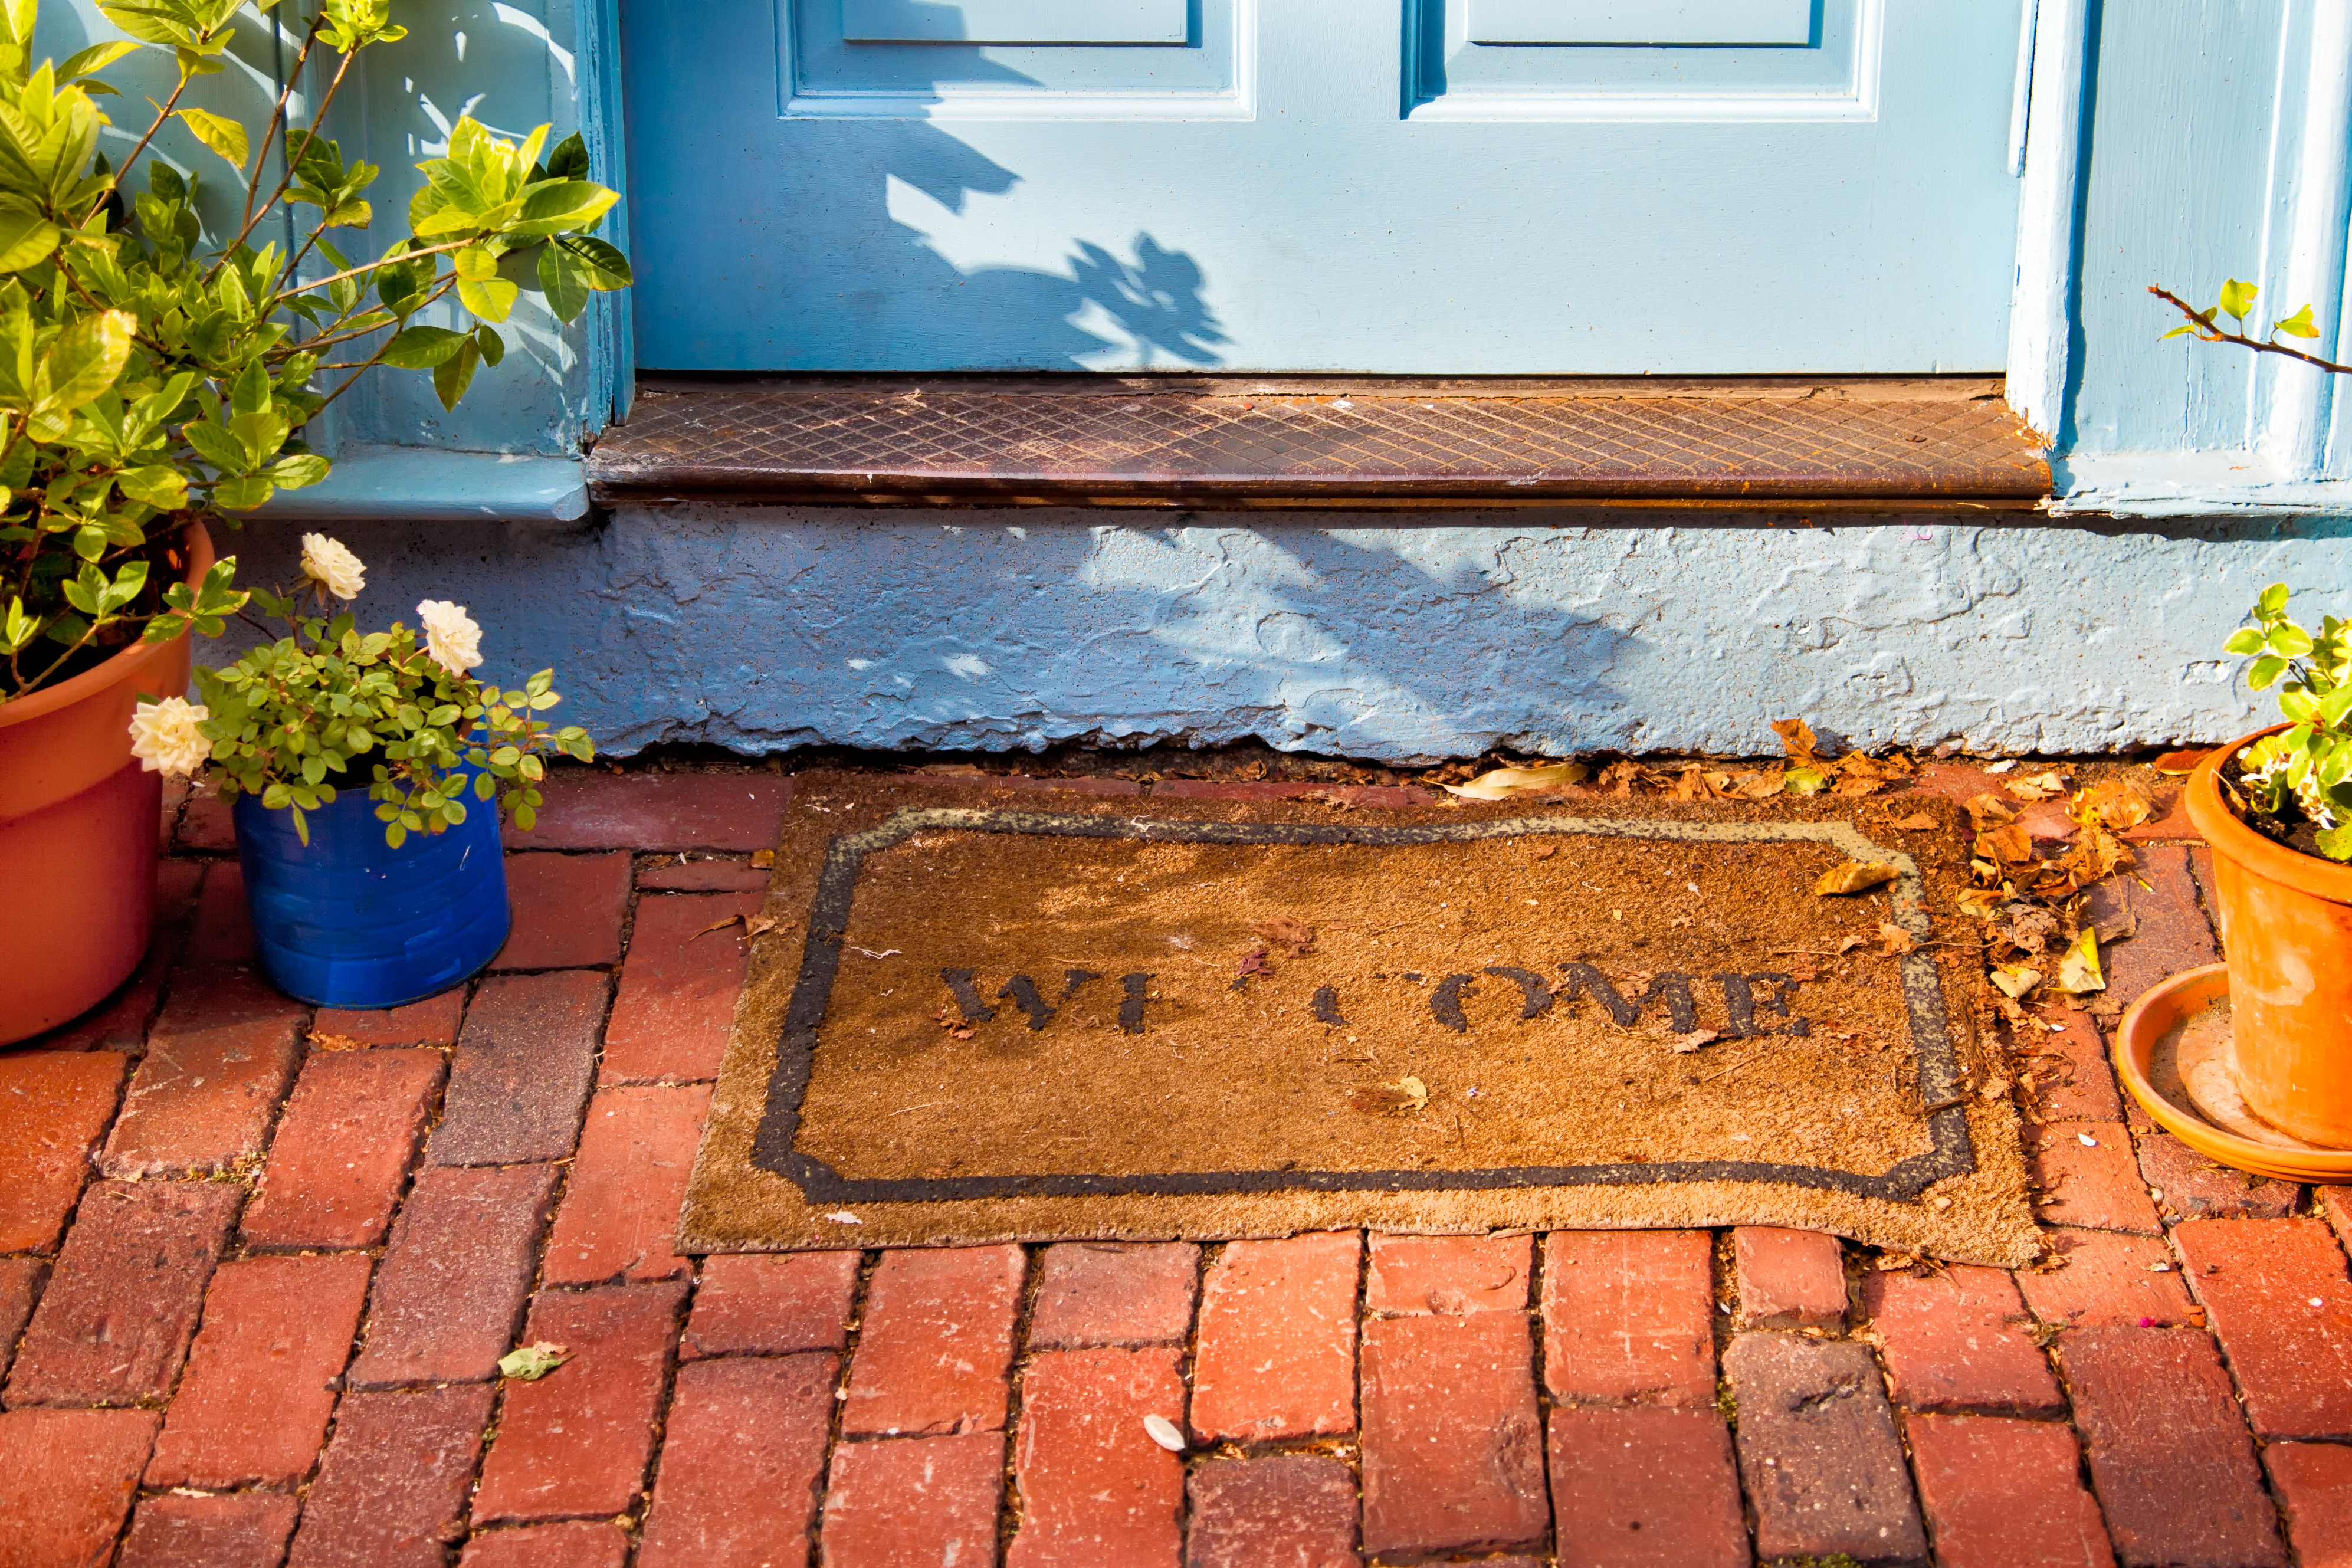 A welcome mat at the outside foot of a door on a brick path.